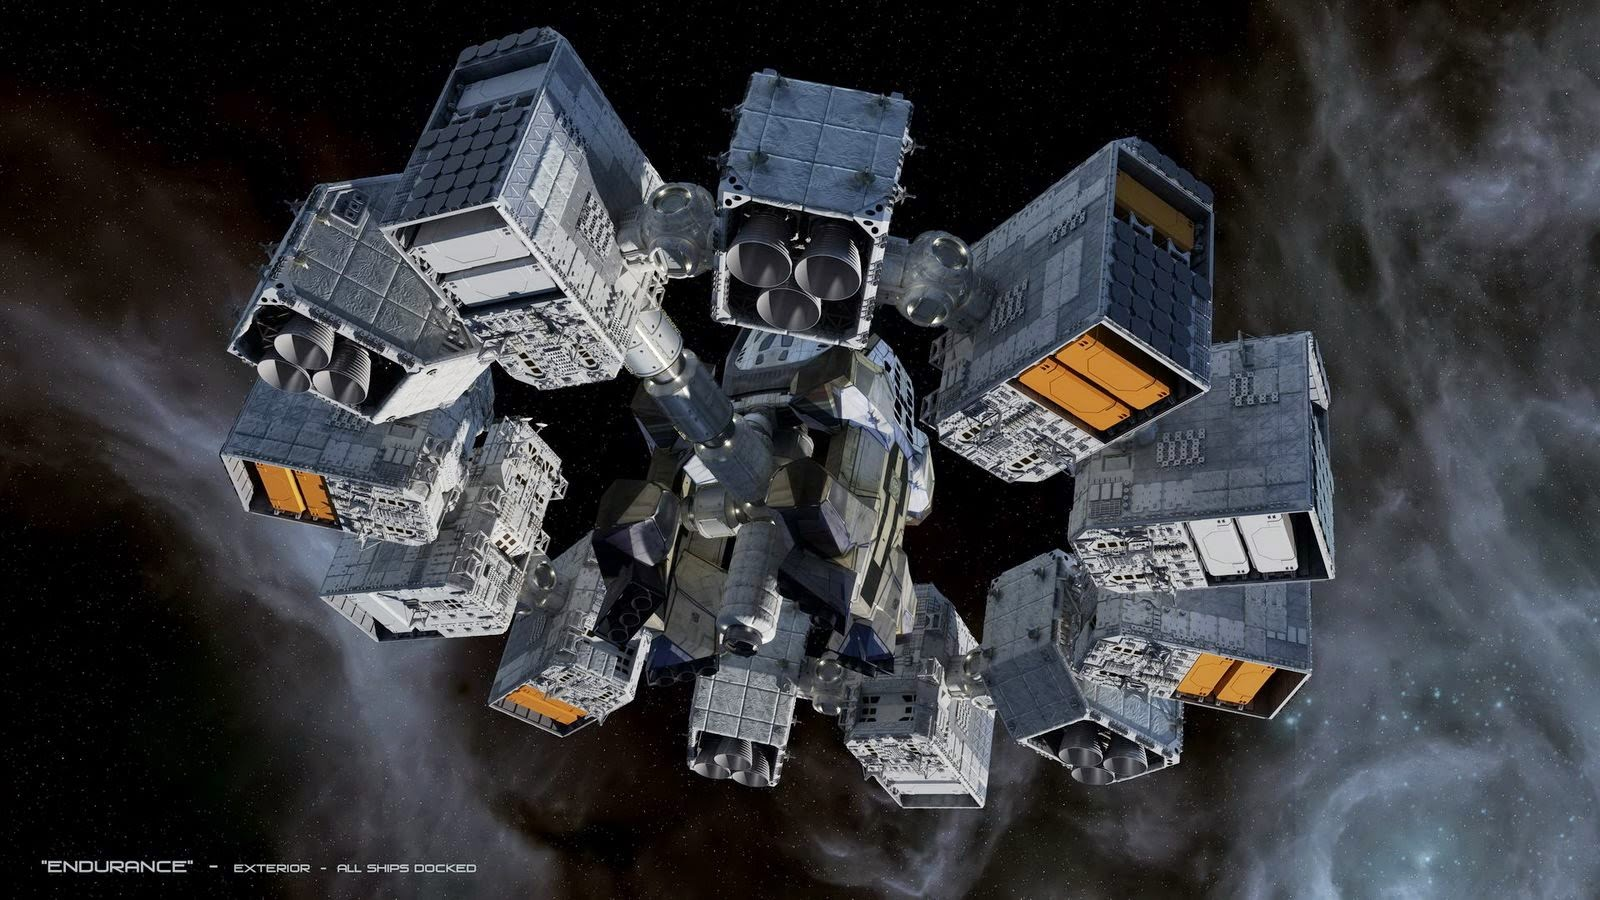 Future Interstellar Spacecraft (page 3) - Pics about space